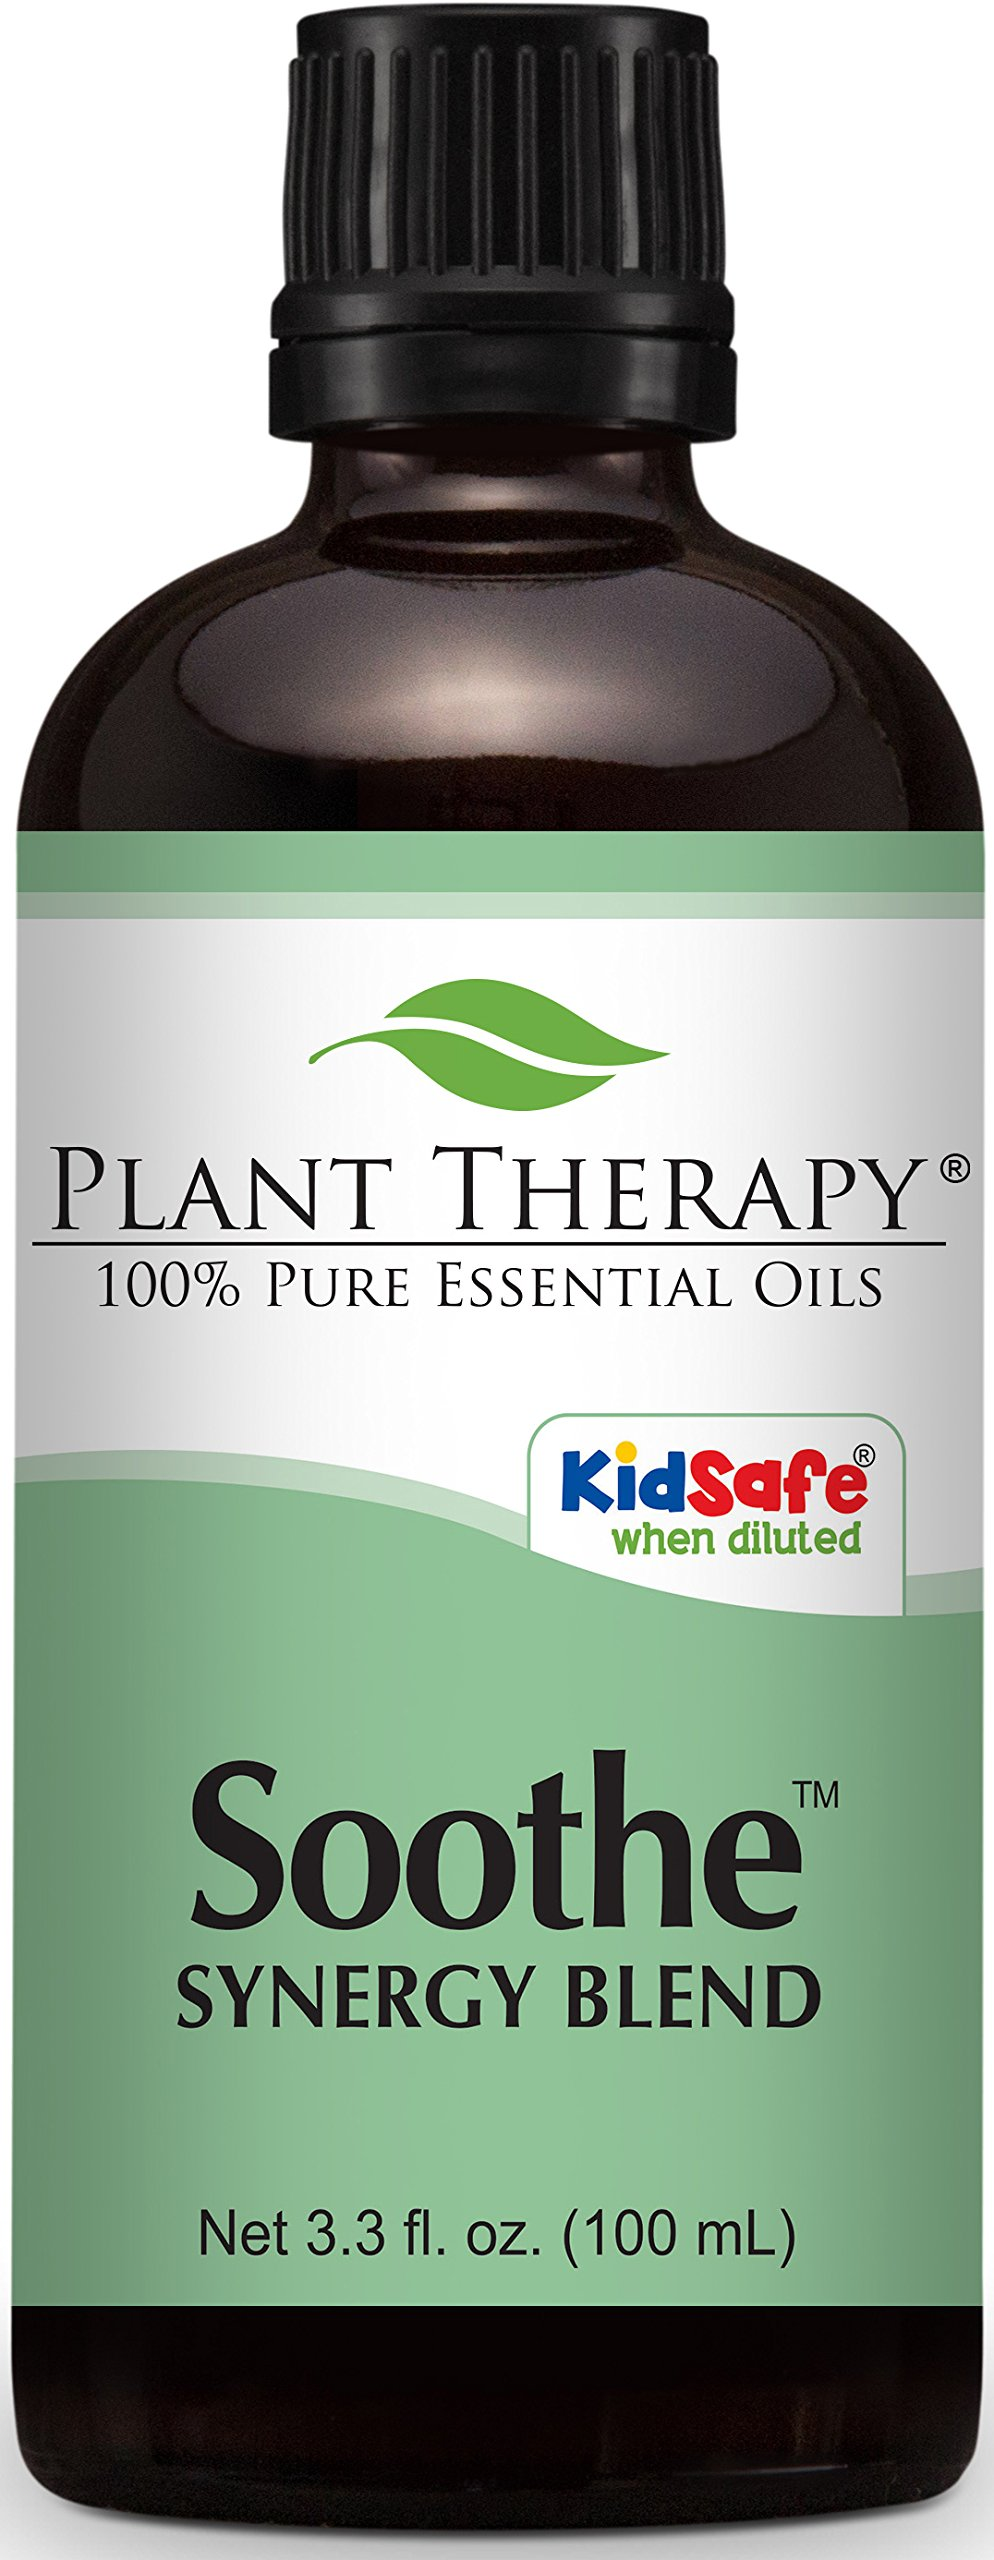 Plant Therapy Soothe Synergy Essential Oil 100 mL (3.3 oz) 100% Pure, Undiluted, Therapeutic Grade by Plant Therapy